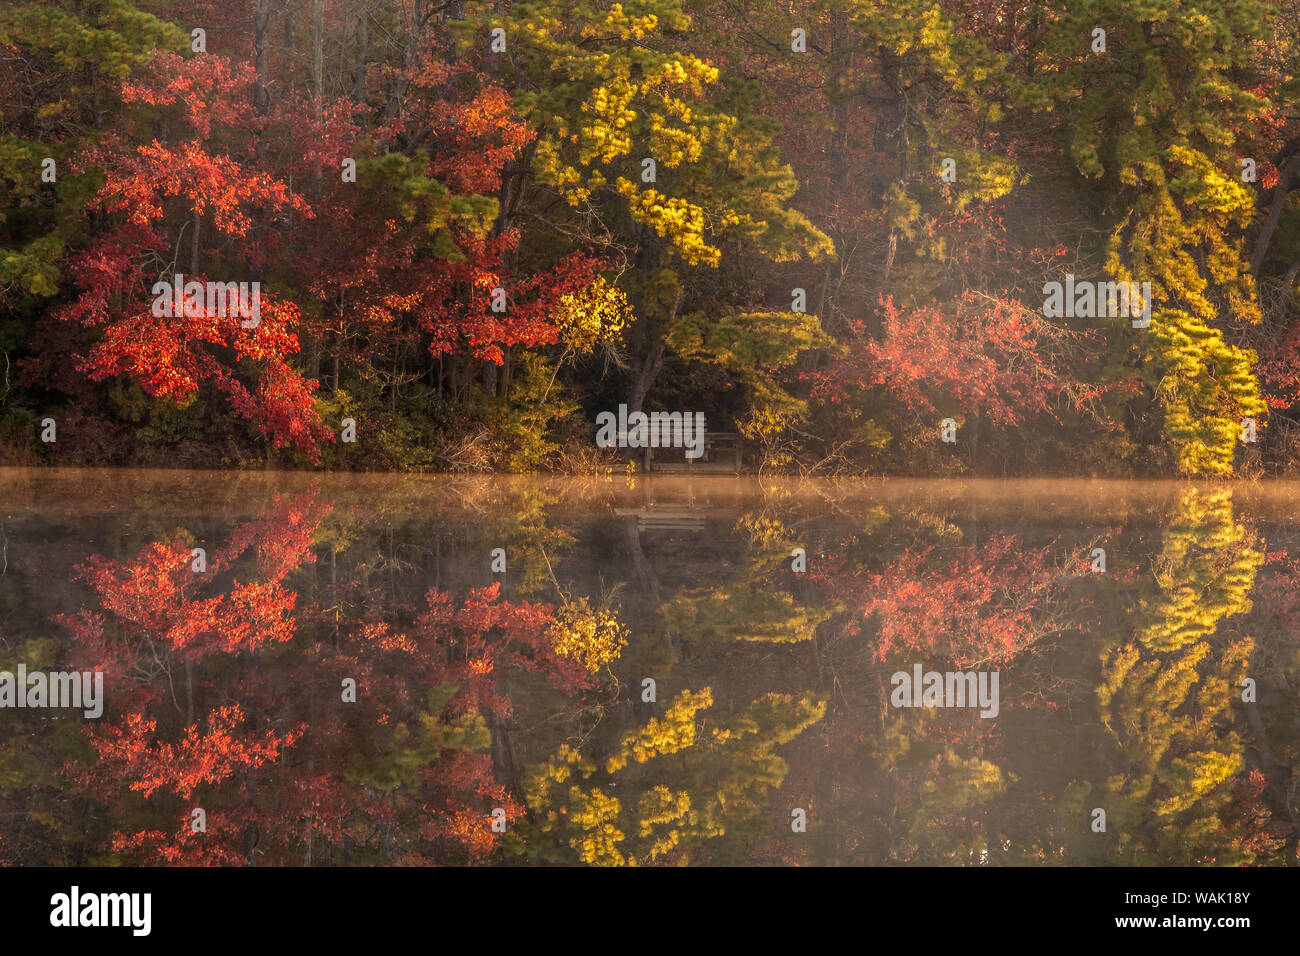 Usa New Jersey Belleplain State Forest Autumn Tree Reflections On Lake Credit As Jay O Brien Jaynes Gallery Danitadelimont Com Stock Photo Alamy